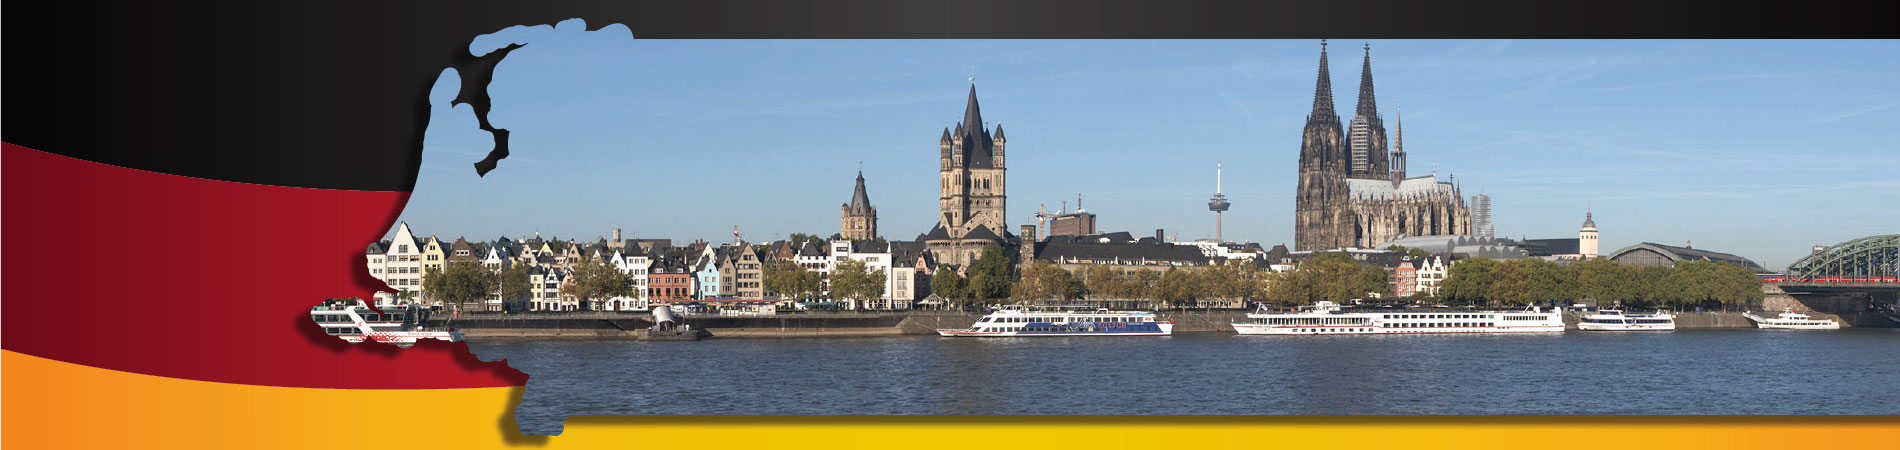 Skyline of Cologne with the worrld famous Cathedral